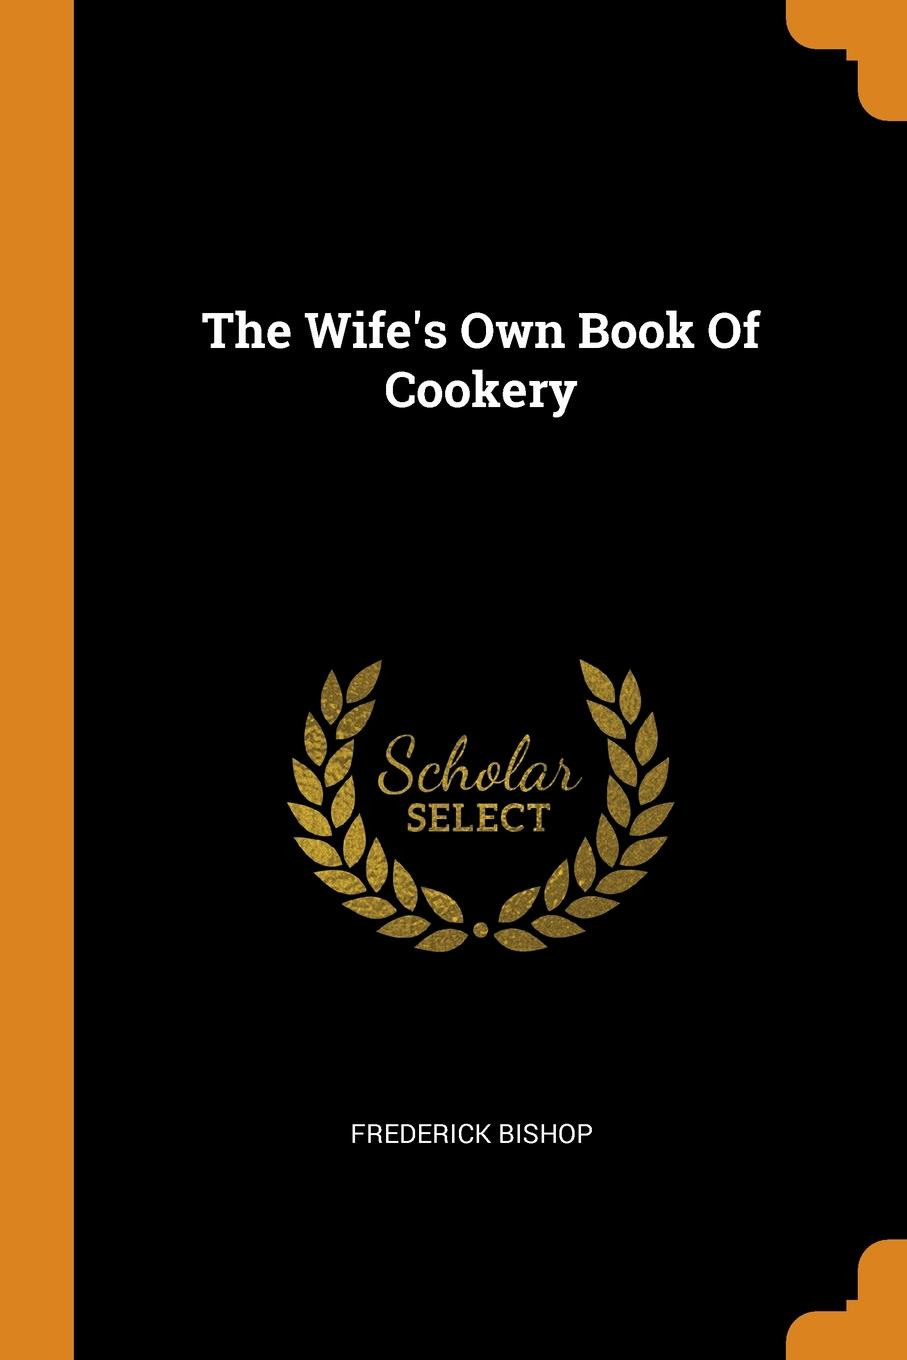 Frederick Bishop The Wife.s Own Book Of Cookery